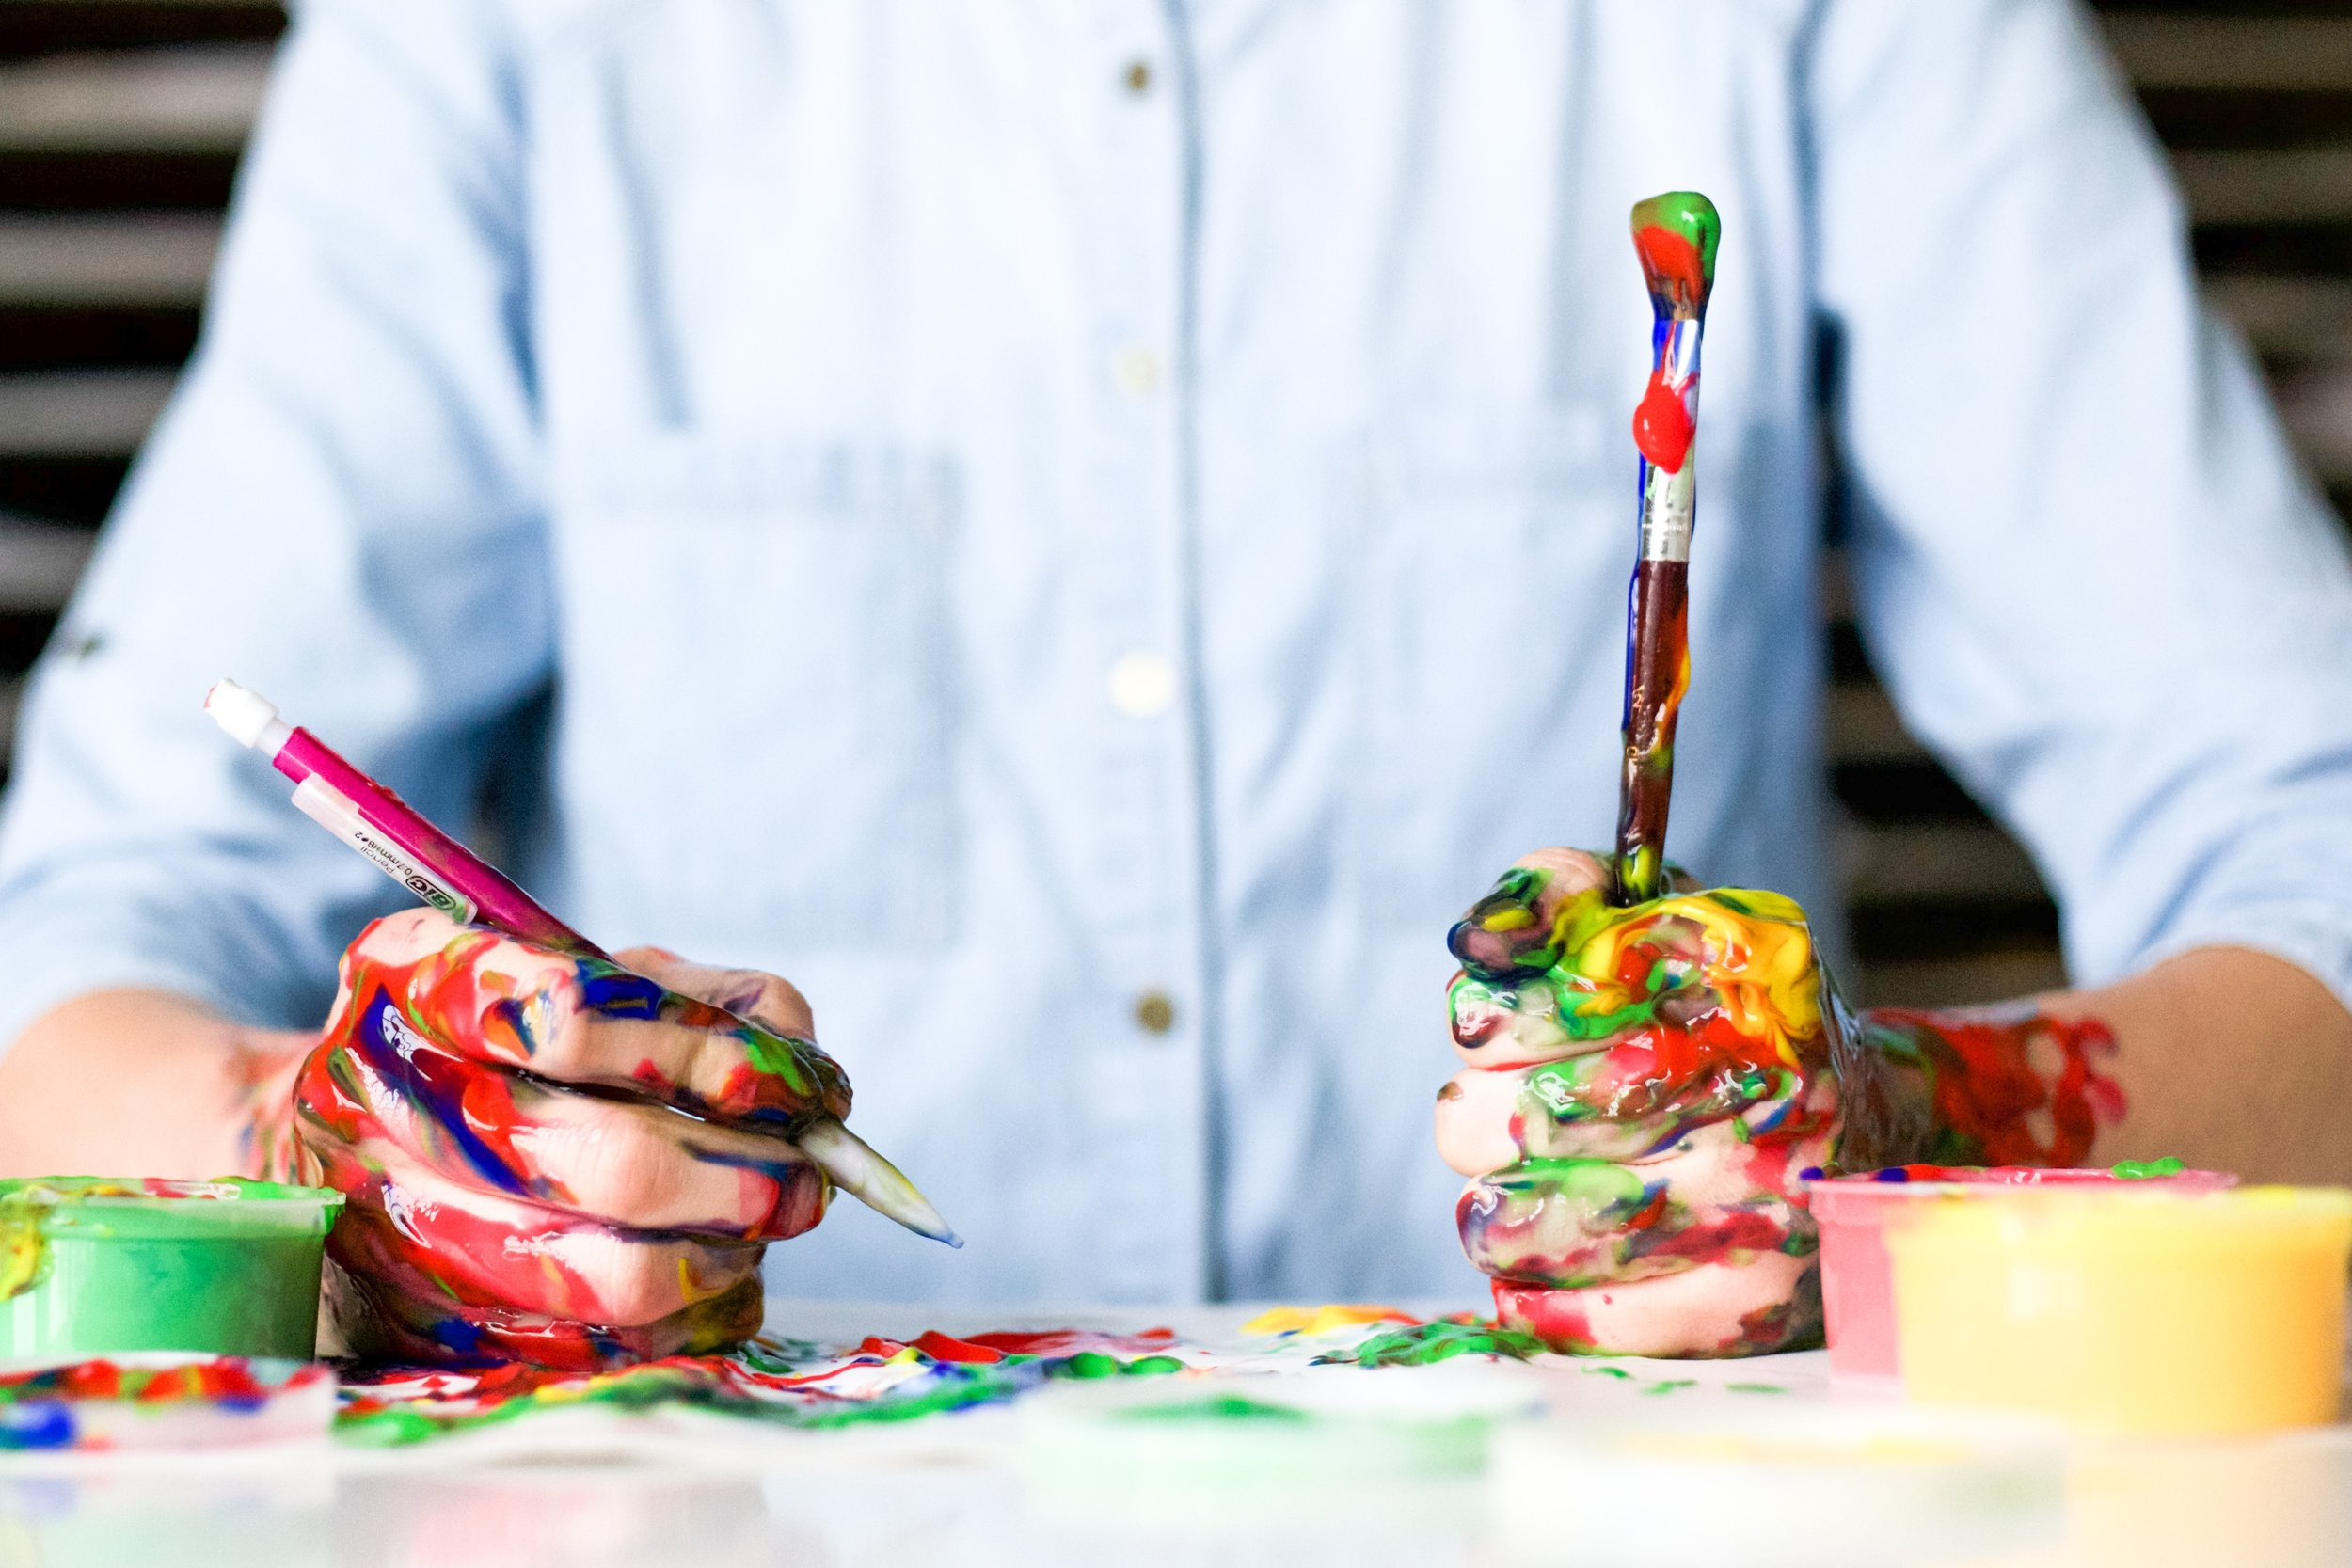 Even if we feel more productive, we can't get any  good work done with messy minds (hands).